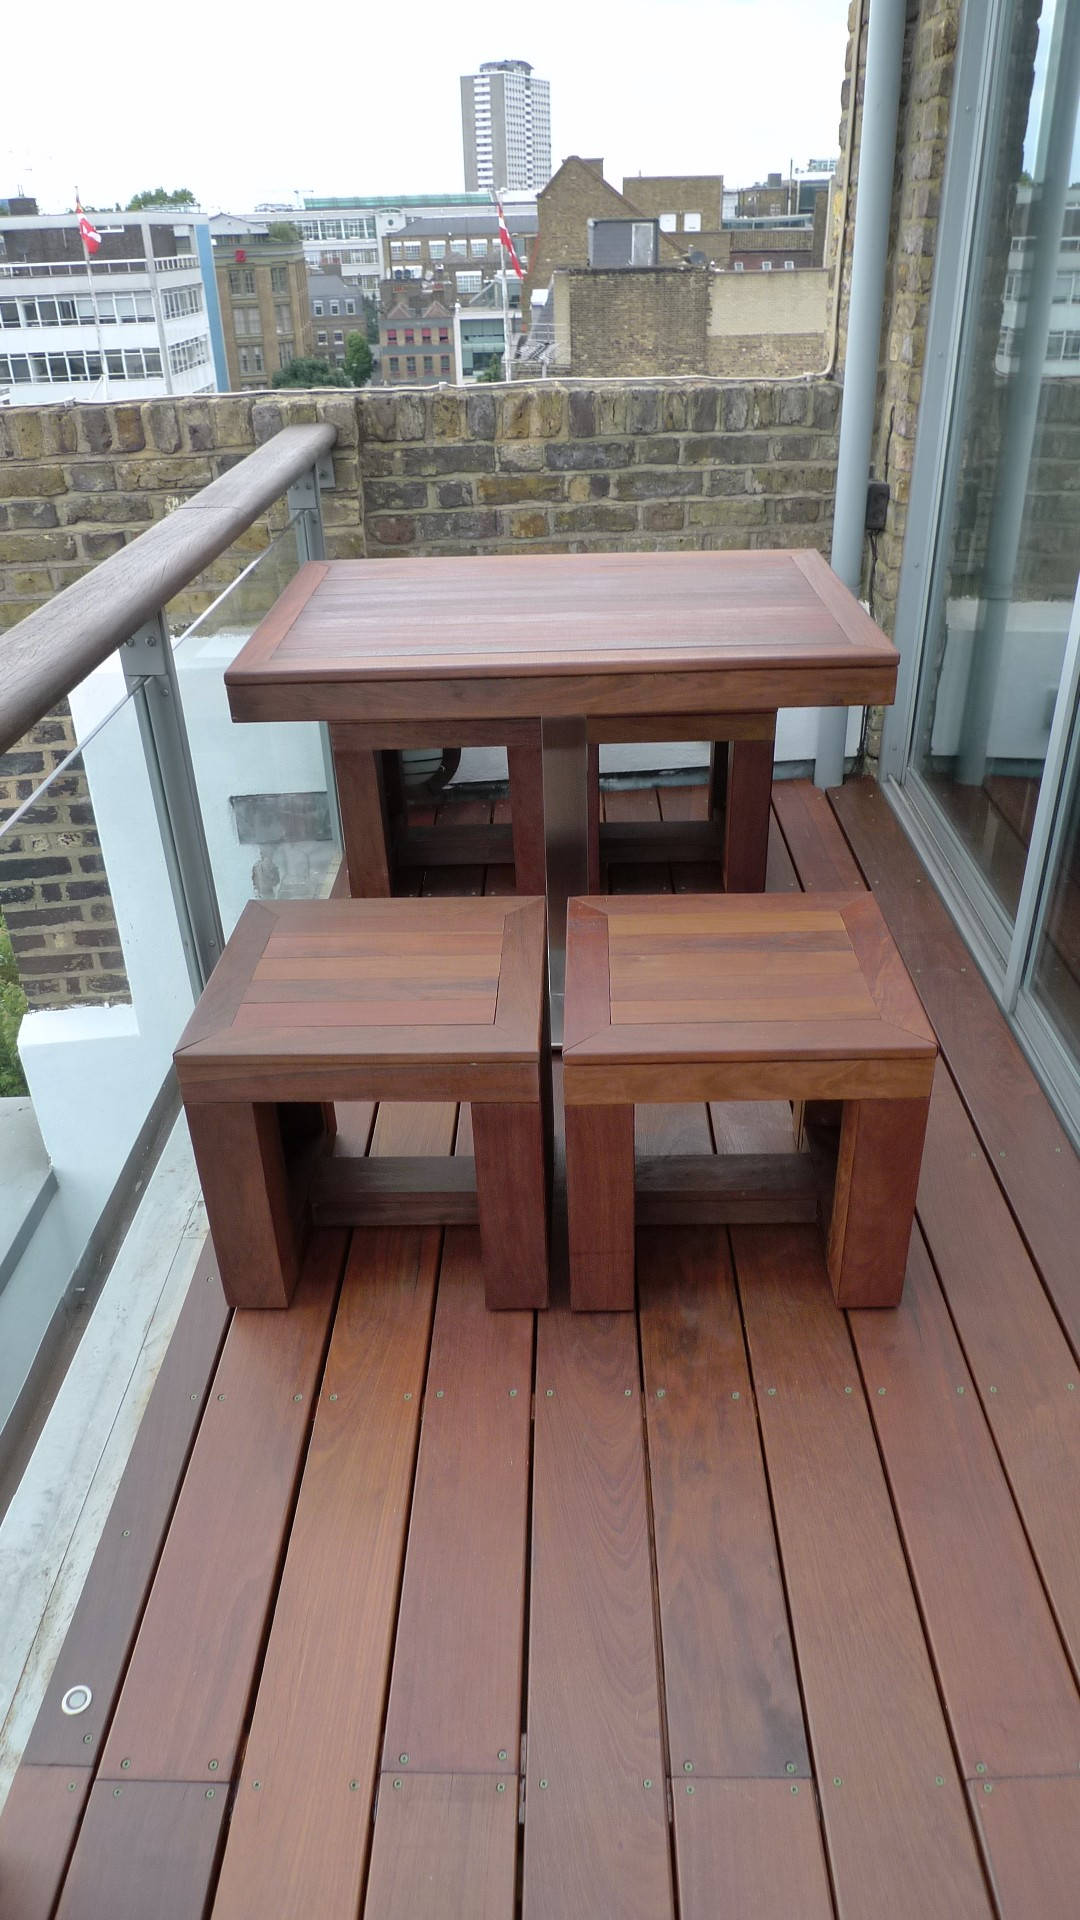 Ipe brazillian hardwood deck decking installation builders garden designers islington central london roof garden (14)